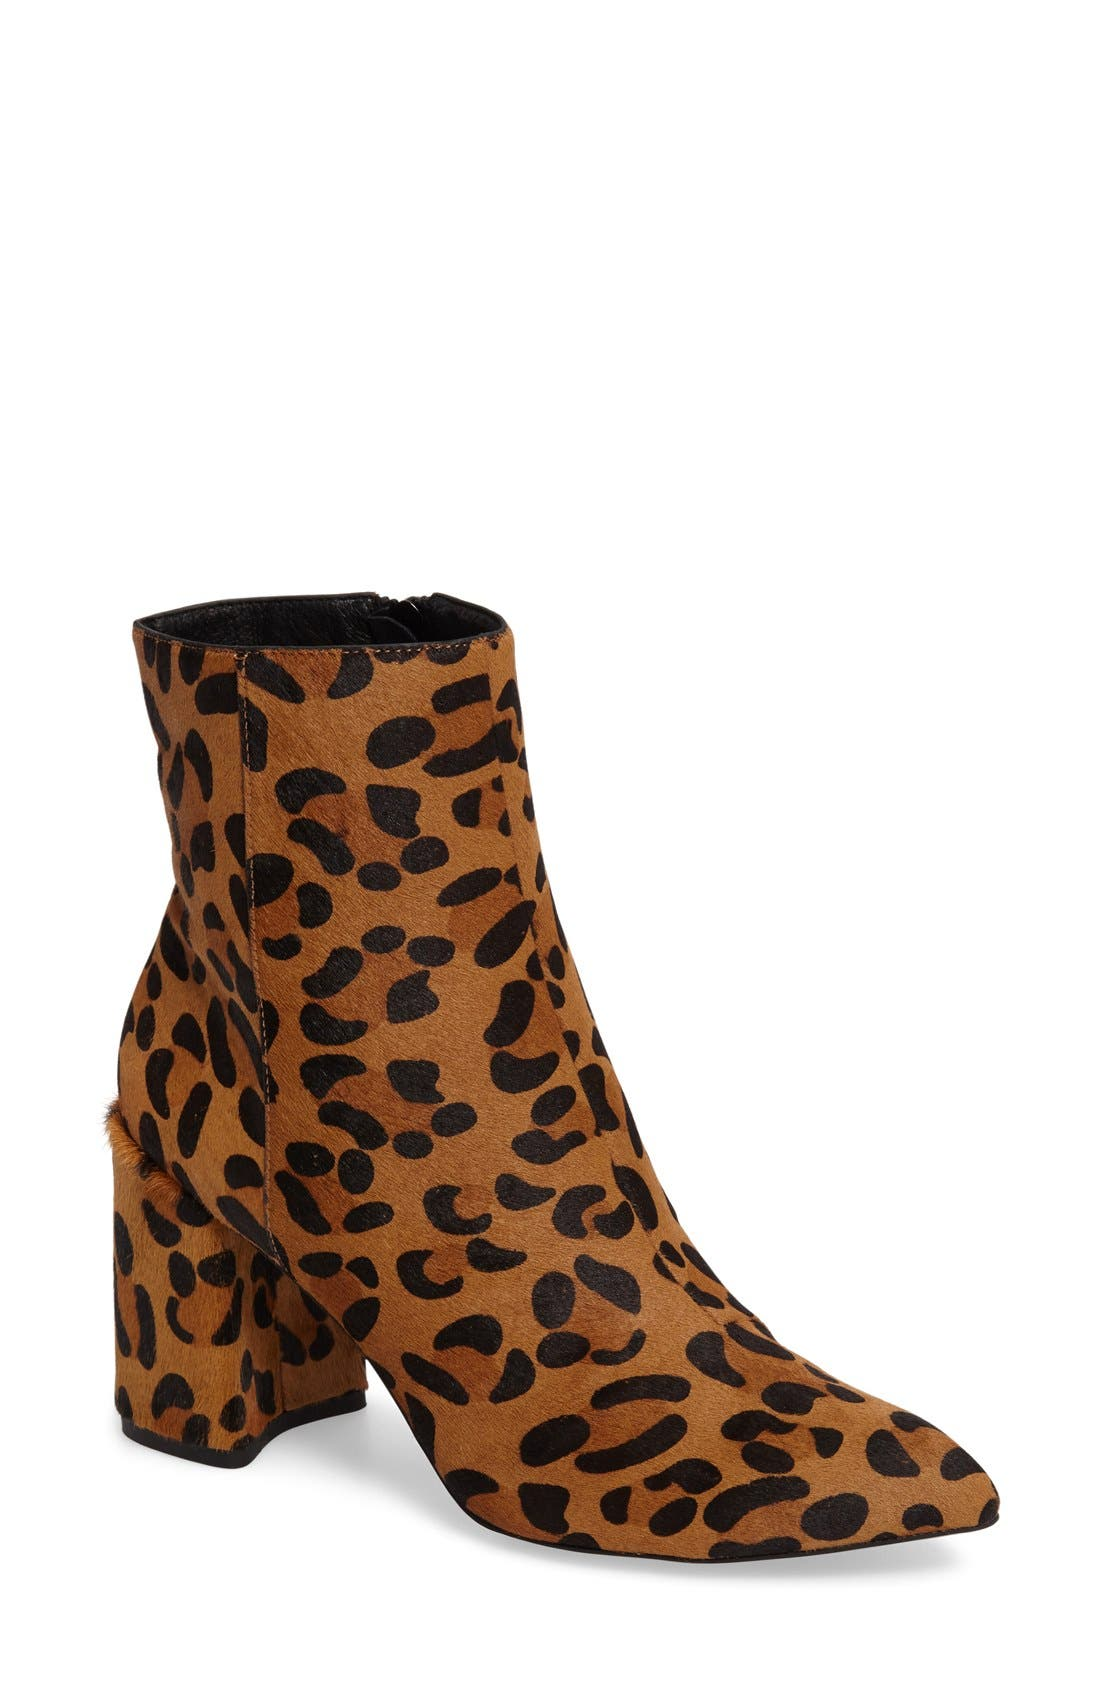 Main Image - Topshop Heart Genuine Calf Hair Boot (Women)